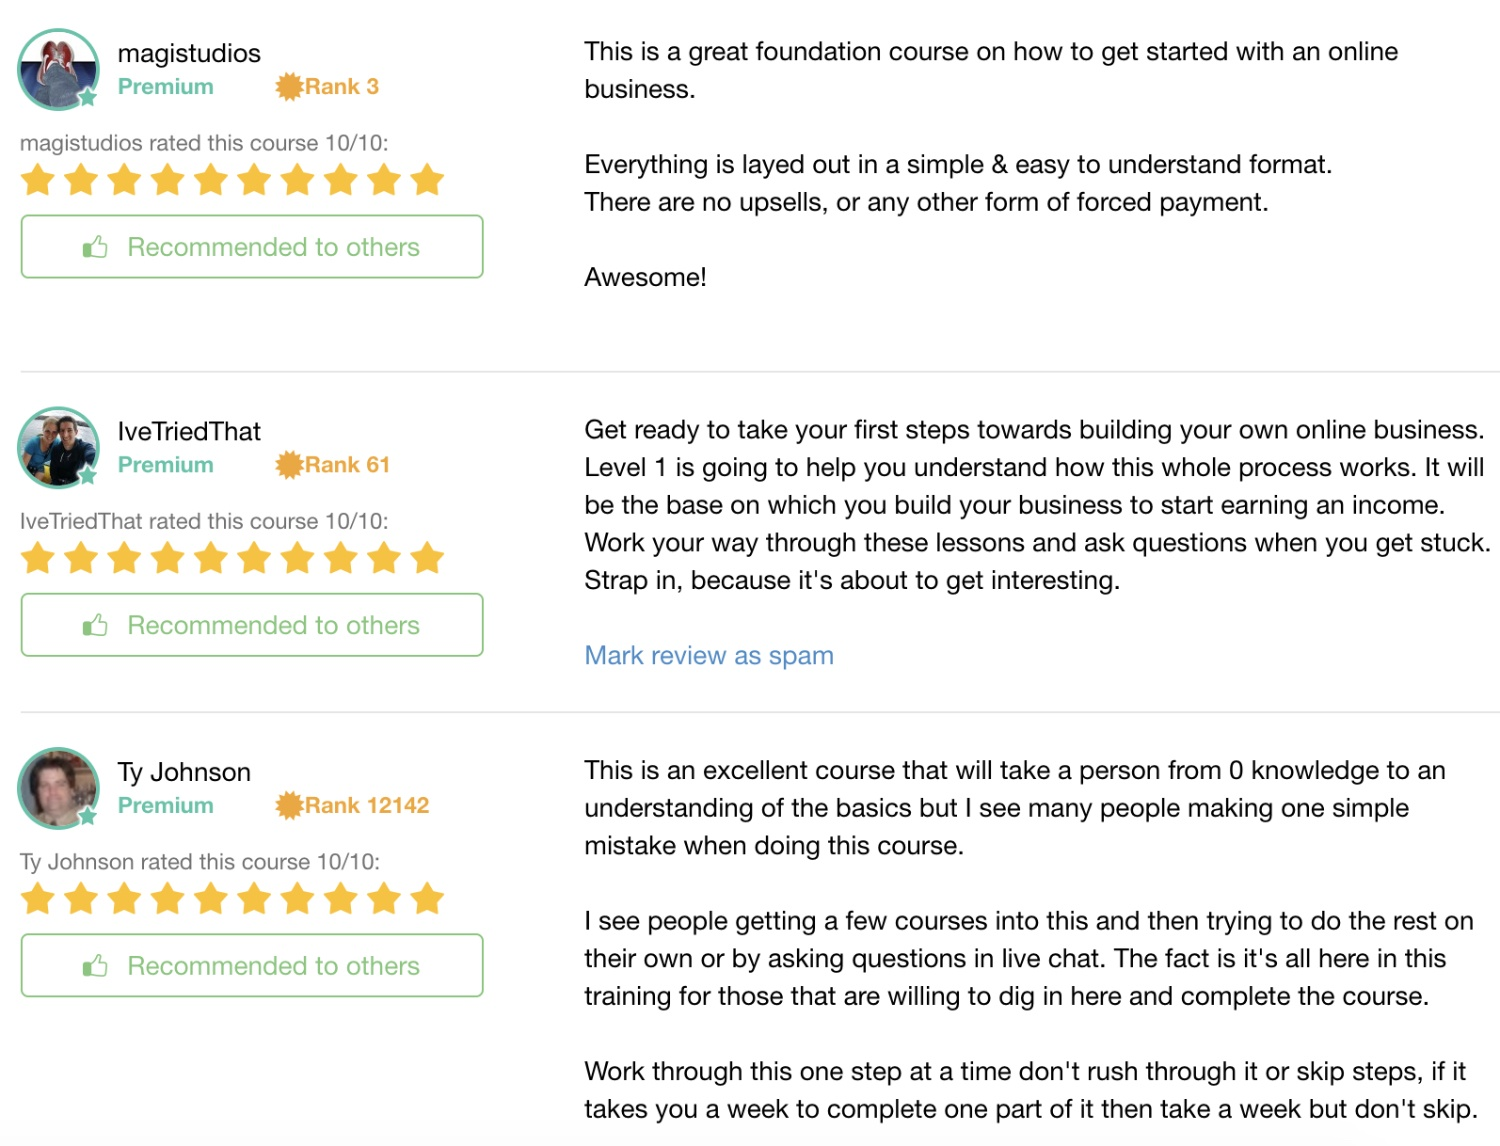 member reviews of the OEC course